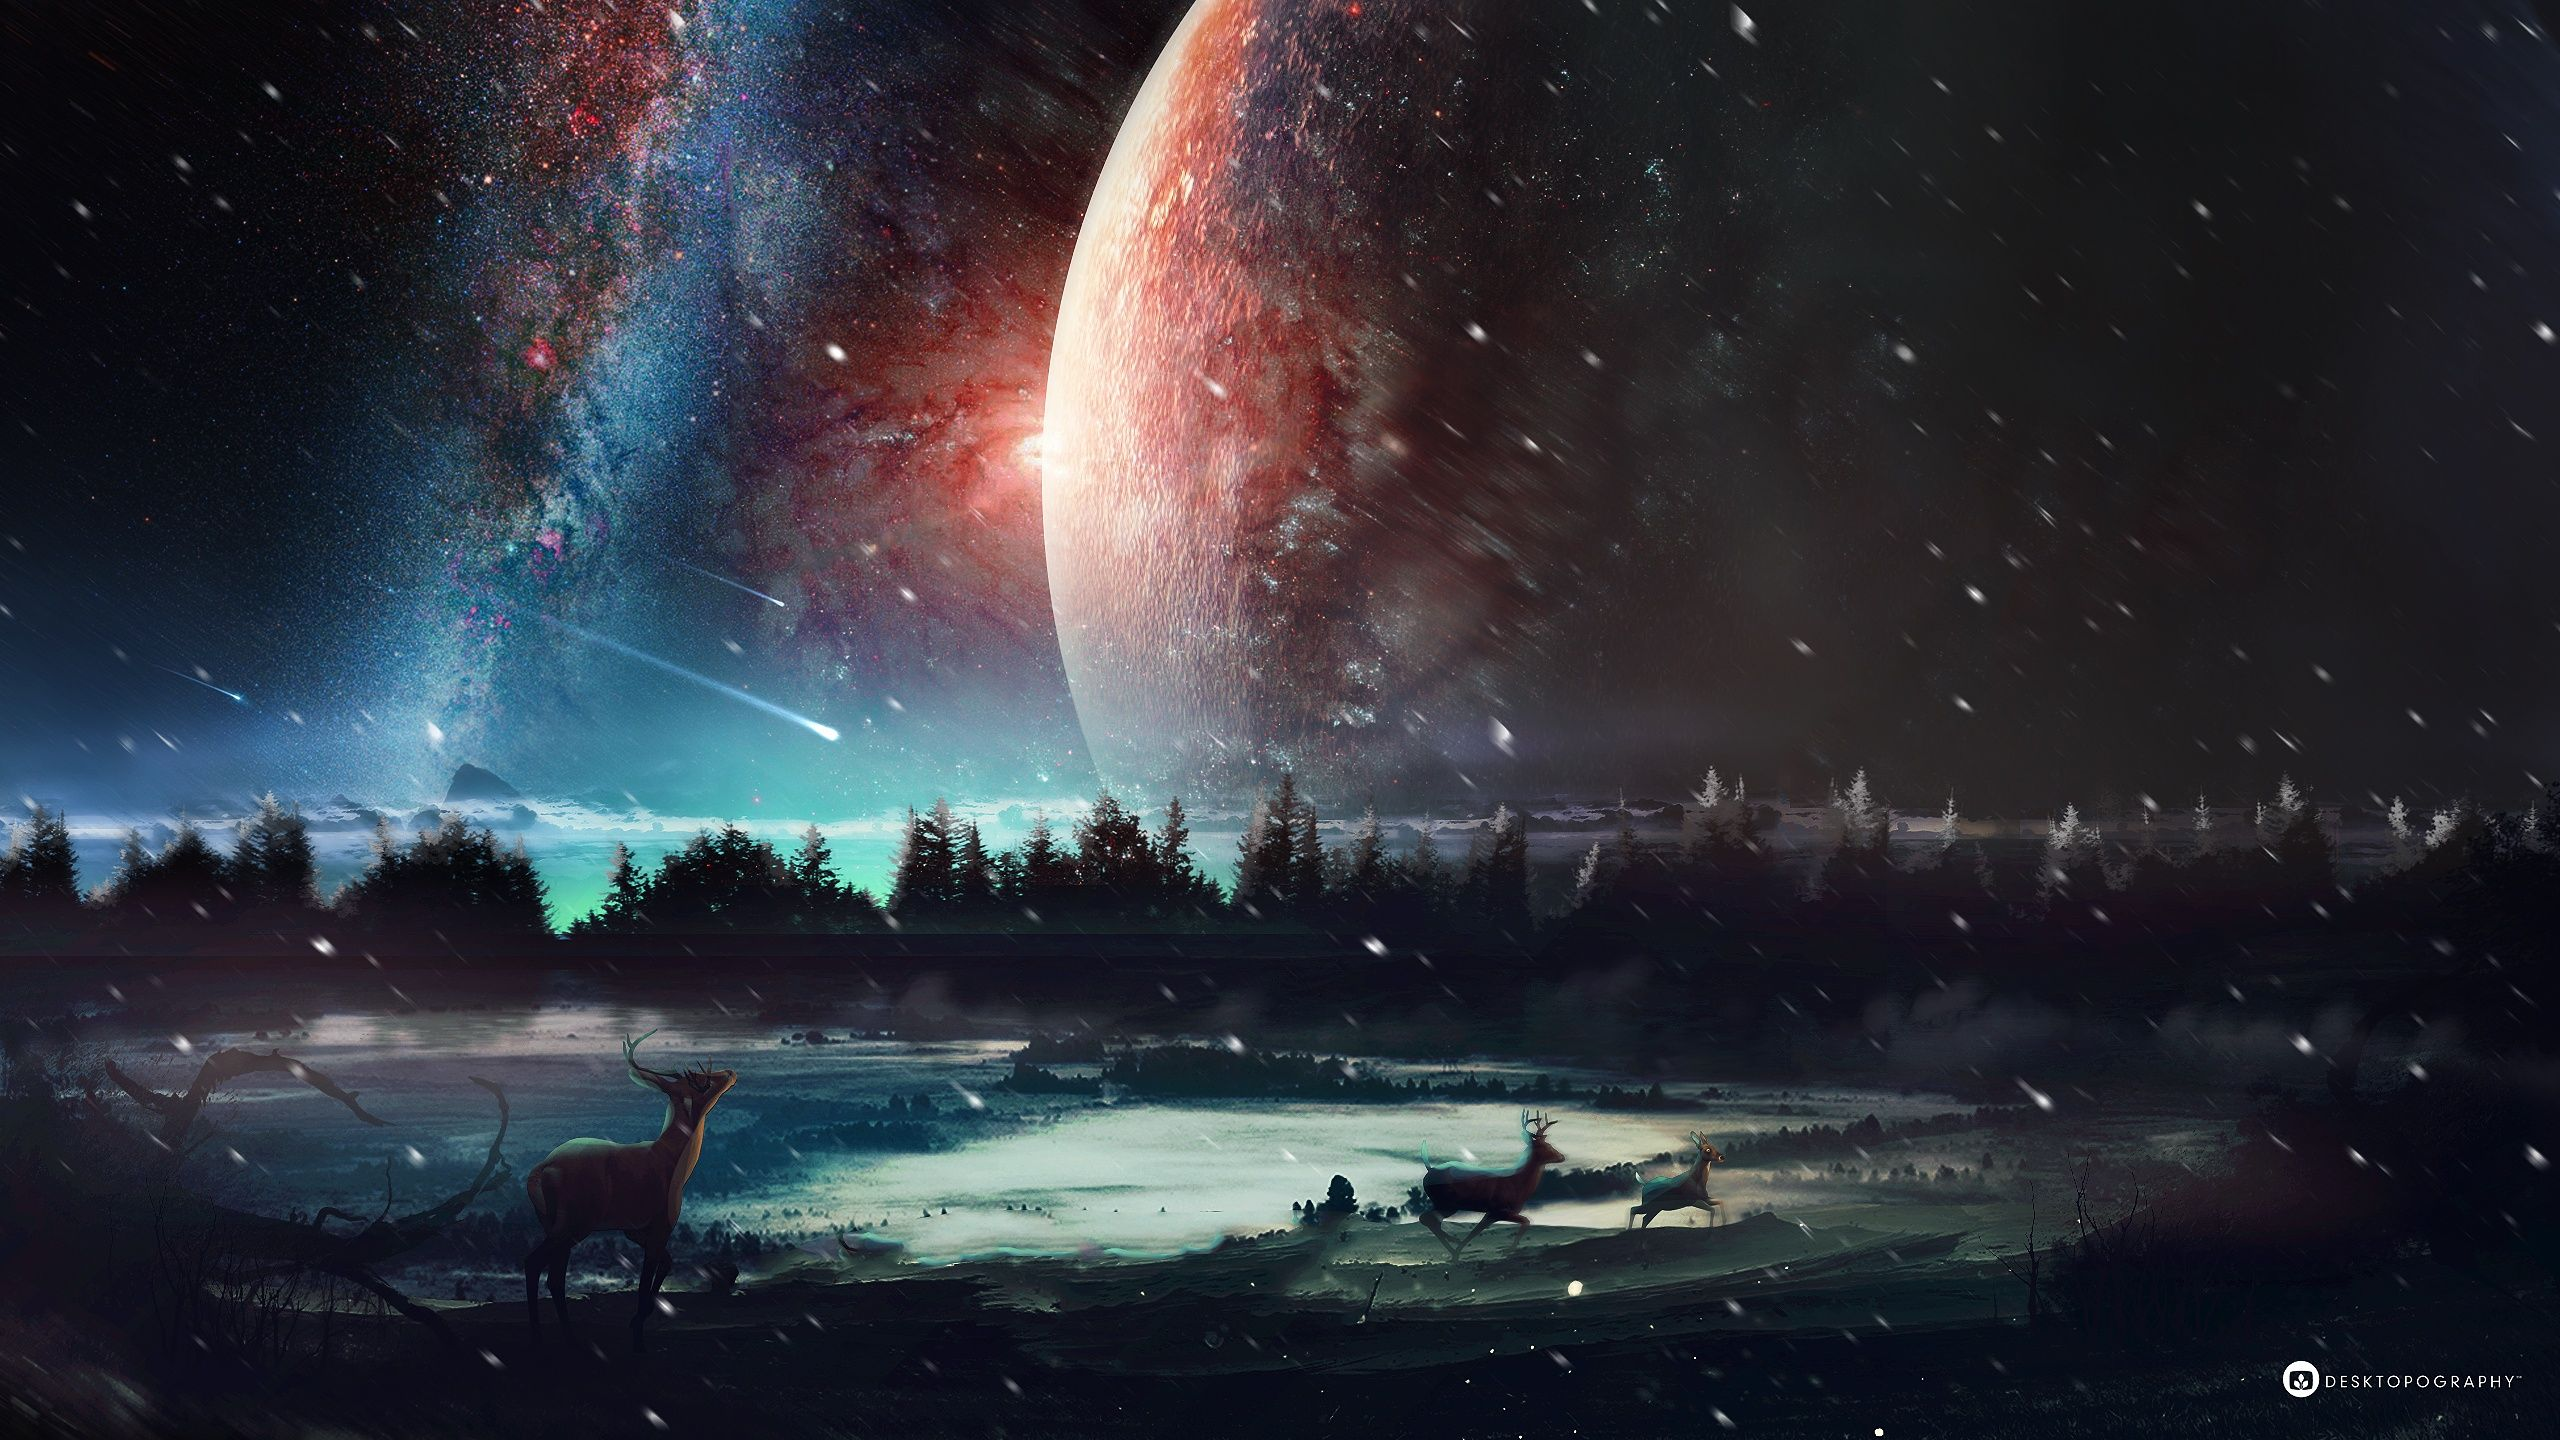 Hd wallpaper universe - Wallpapers Tagged With Universe Universe Hd Wallpapers Page 1